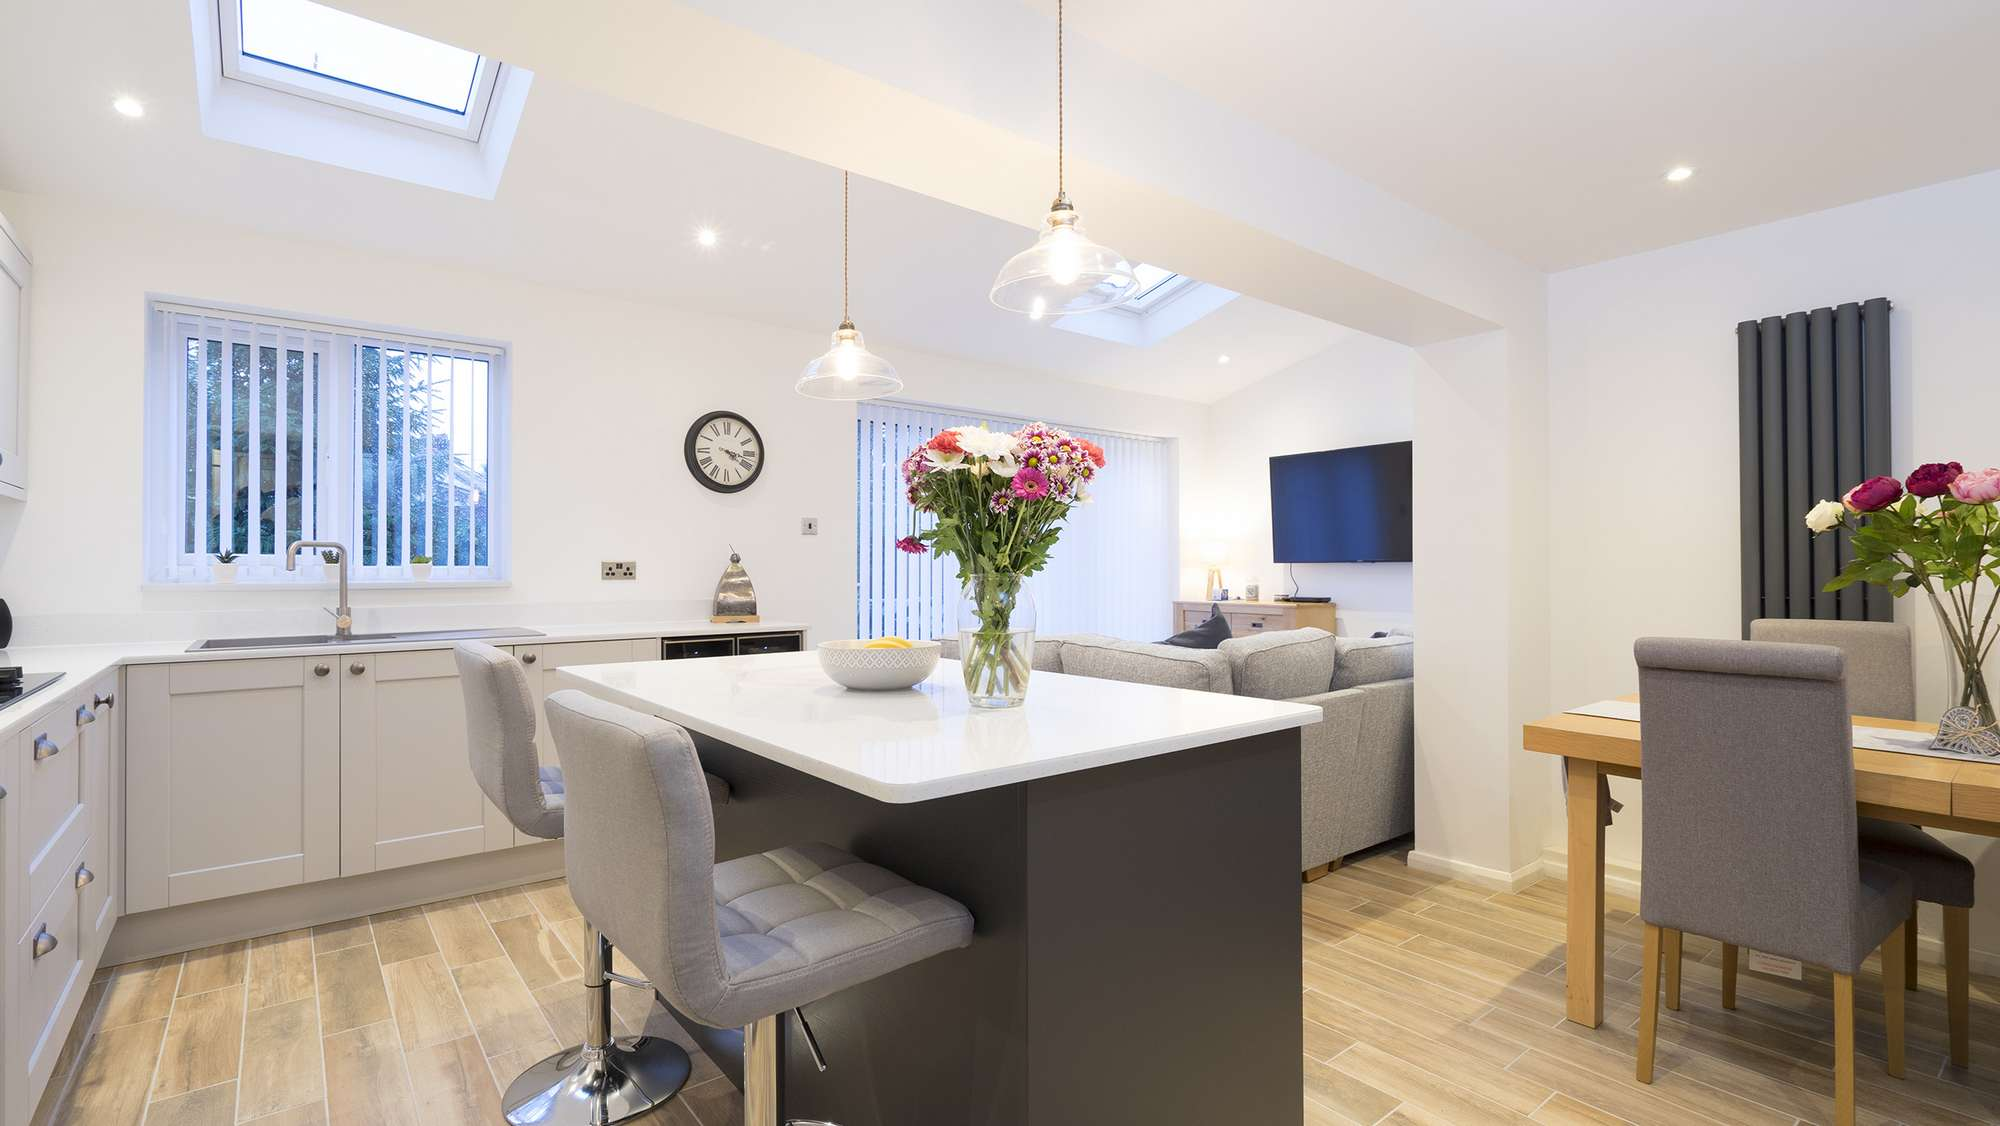 Overview of the open plan living space featuring a shaker kitchen and Corian worktops.